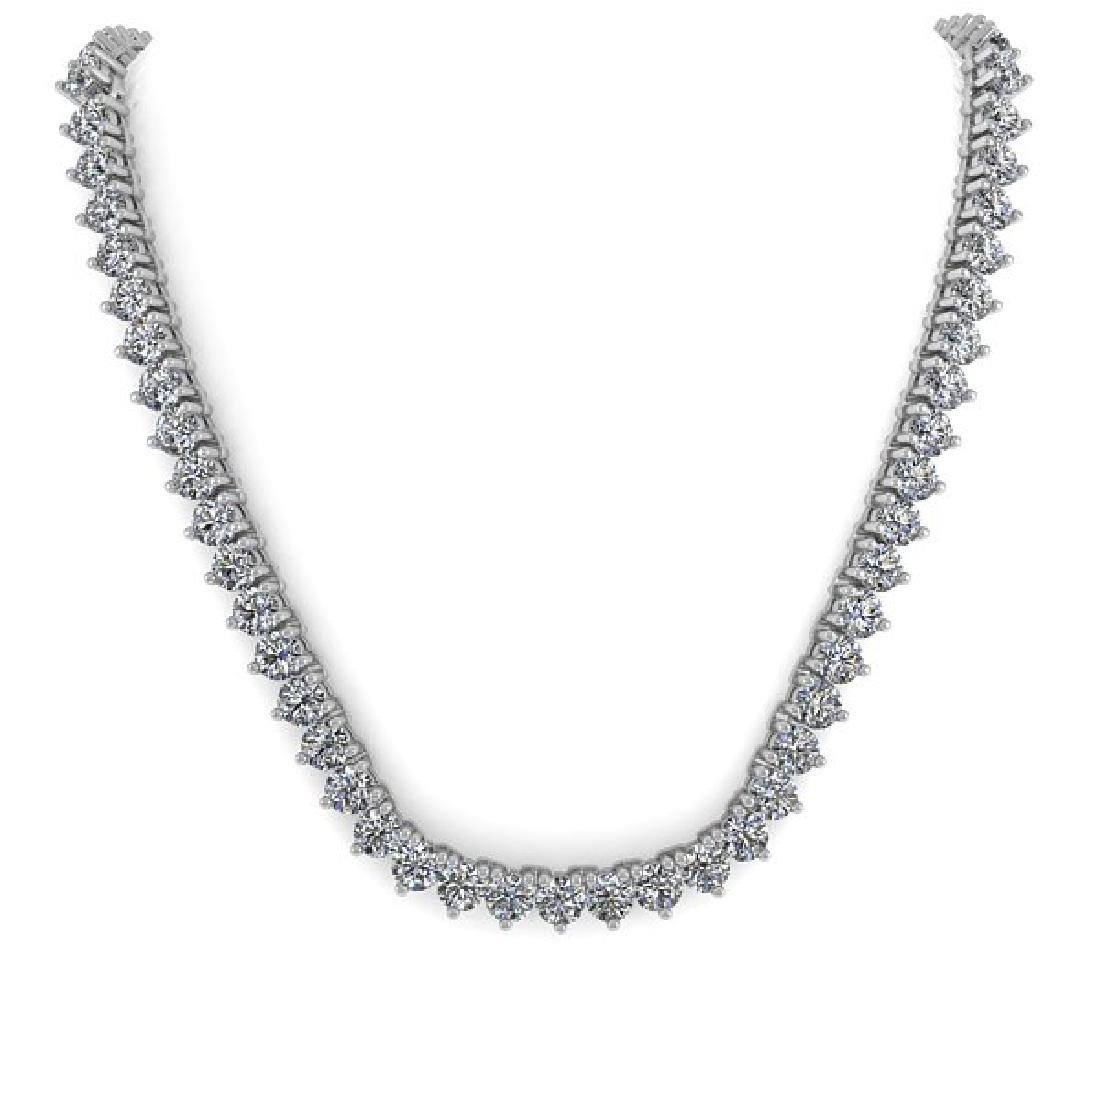 80 CTW Solitaire Certified SI Diamond Necklace 14K - 3